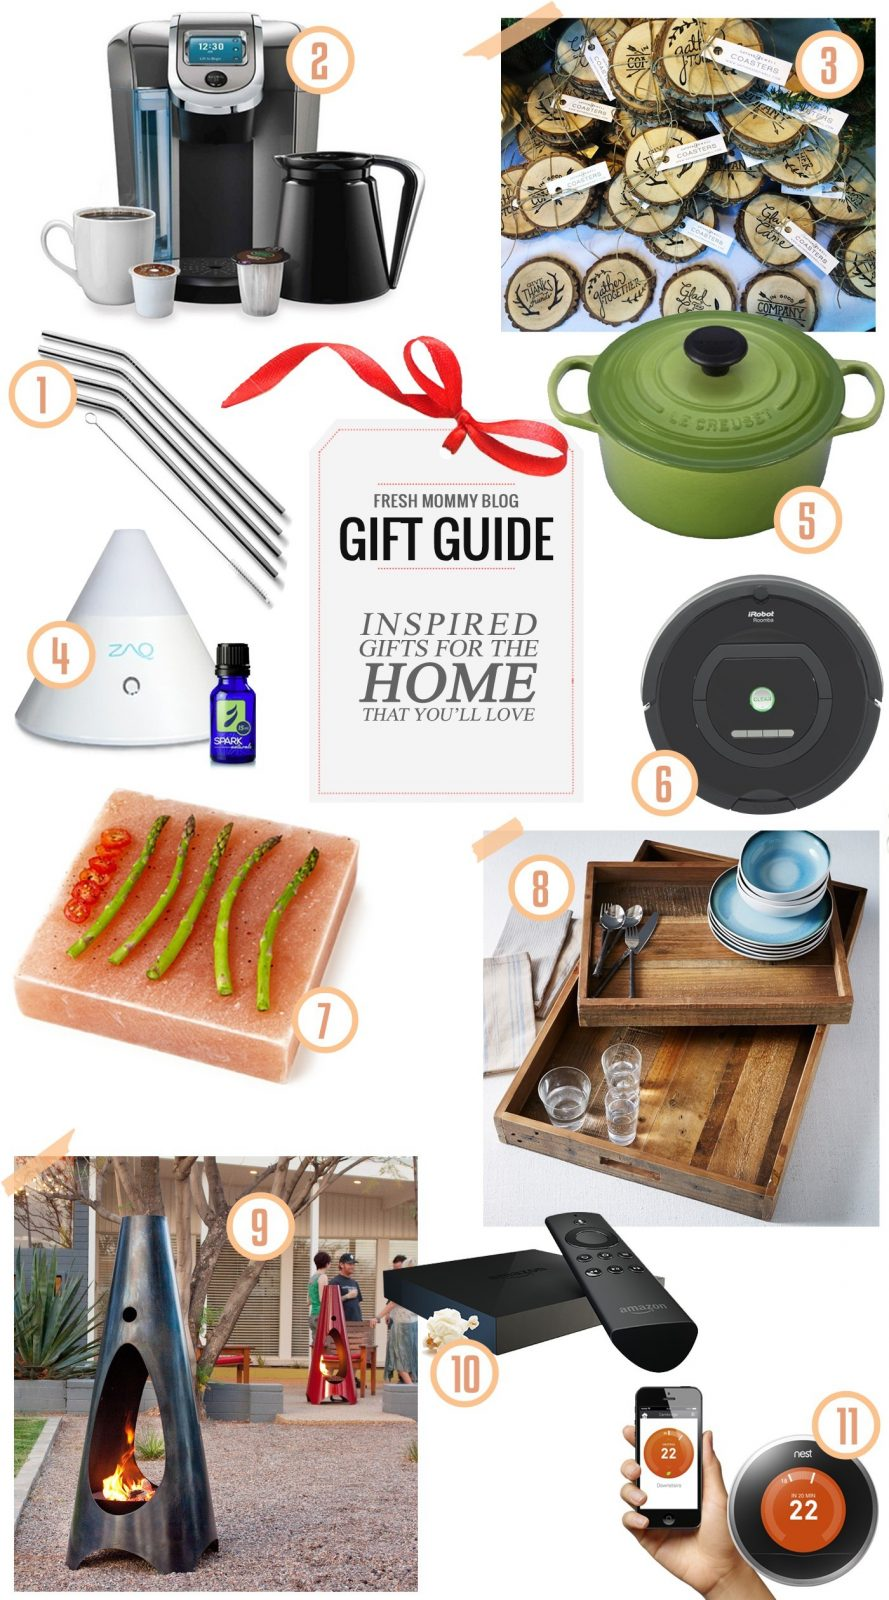 Gift Guide - Top Gifts for the Home